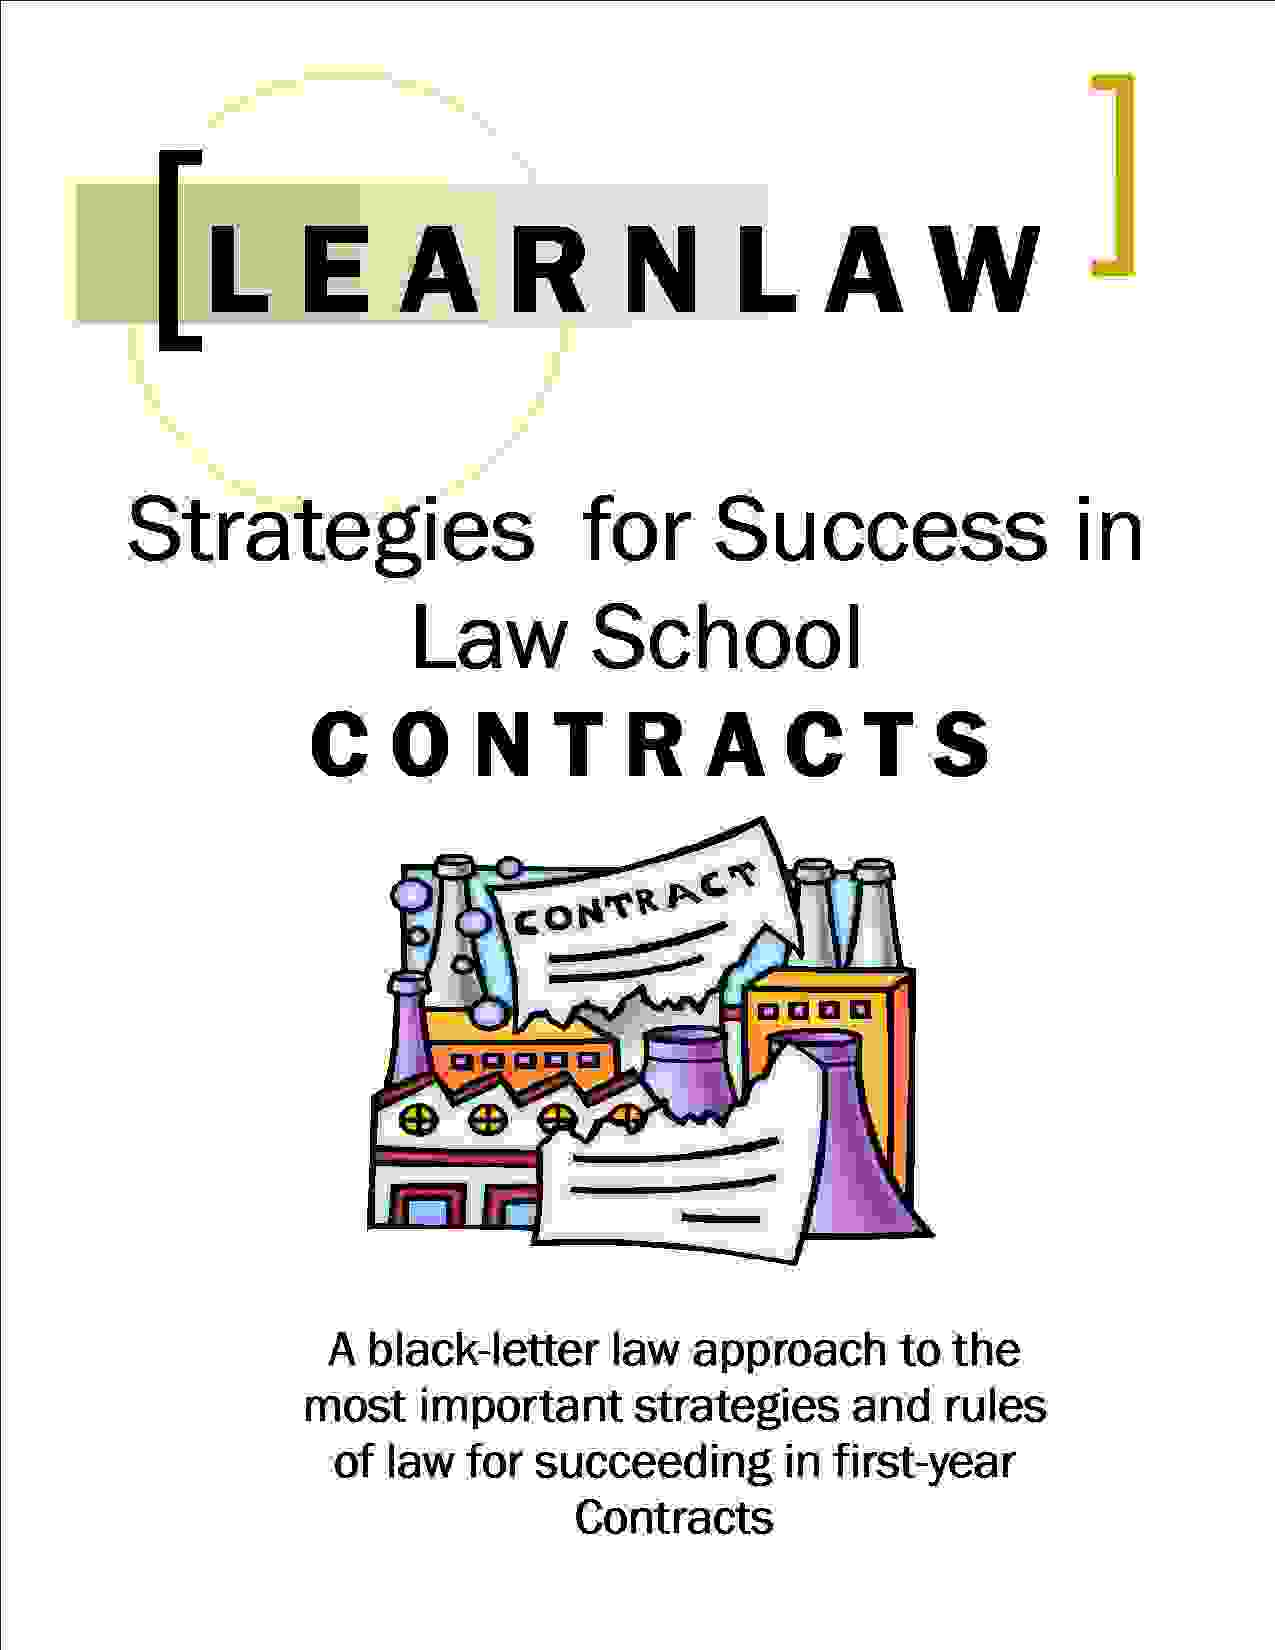 Contracts law offer and acceptance 4 law school - Contracts